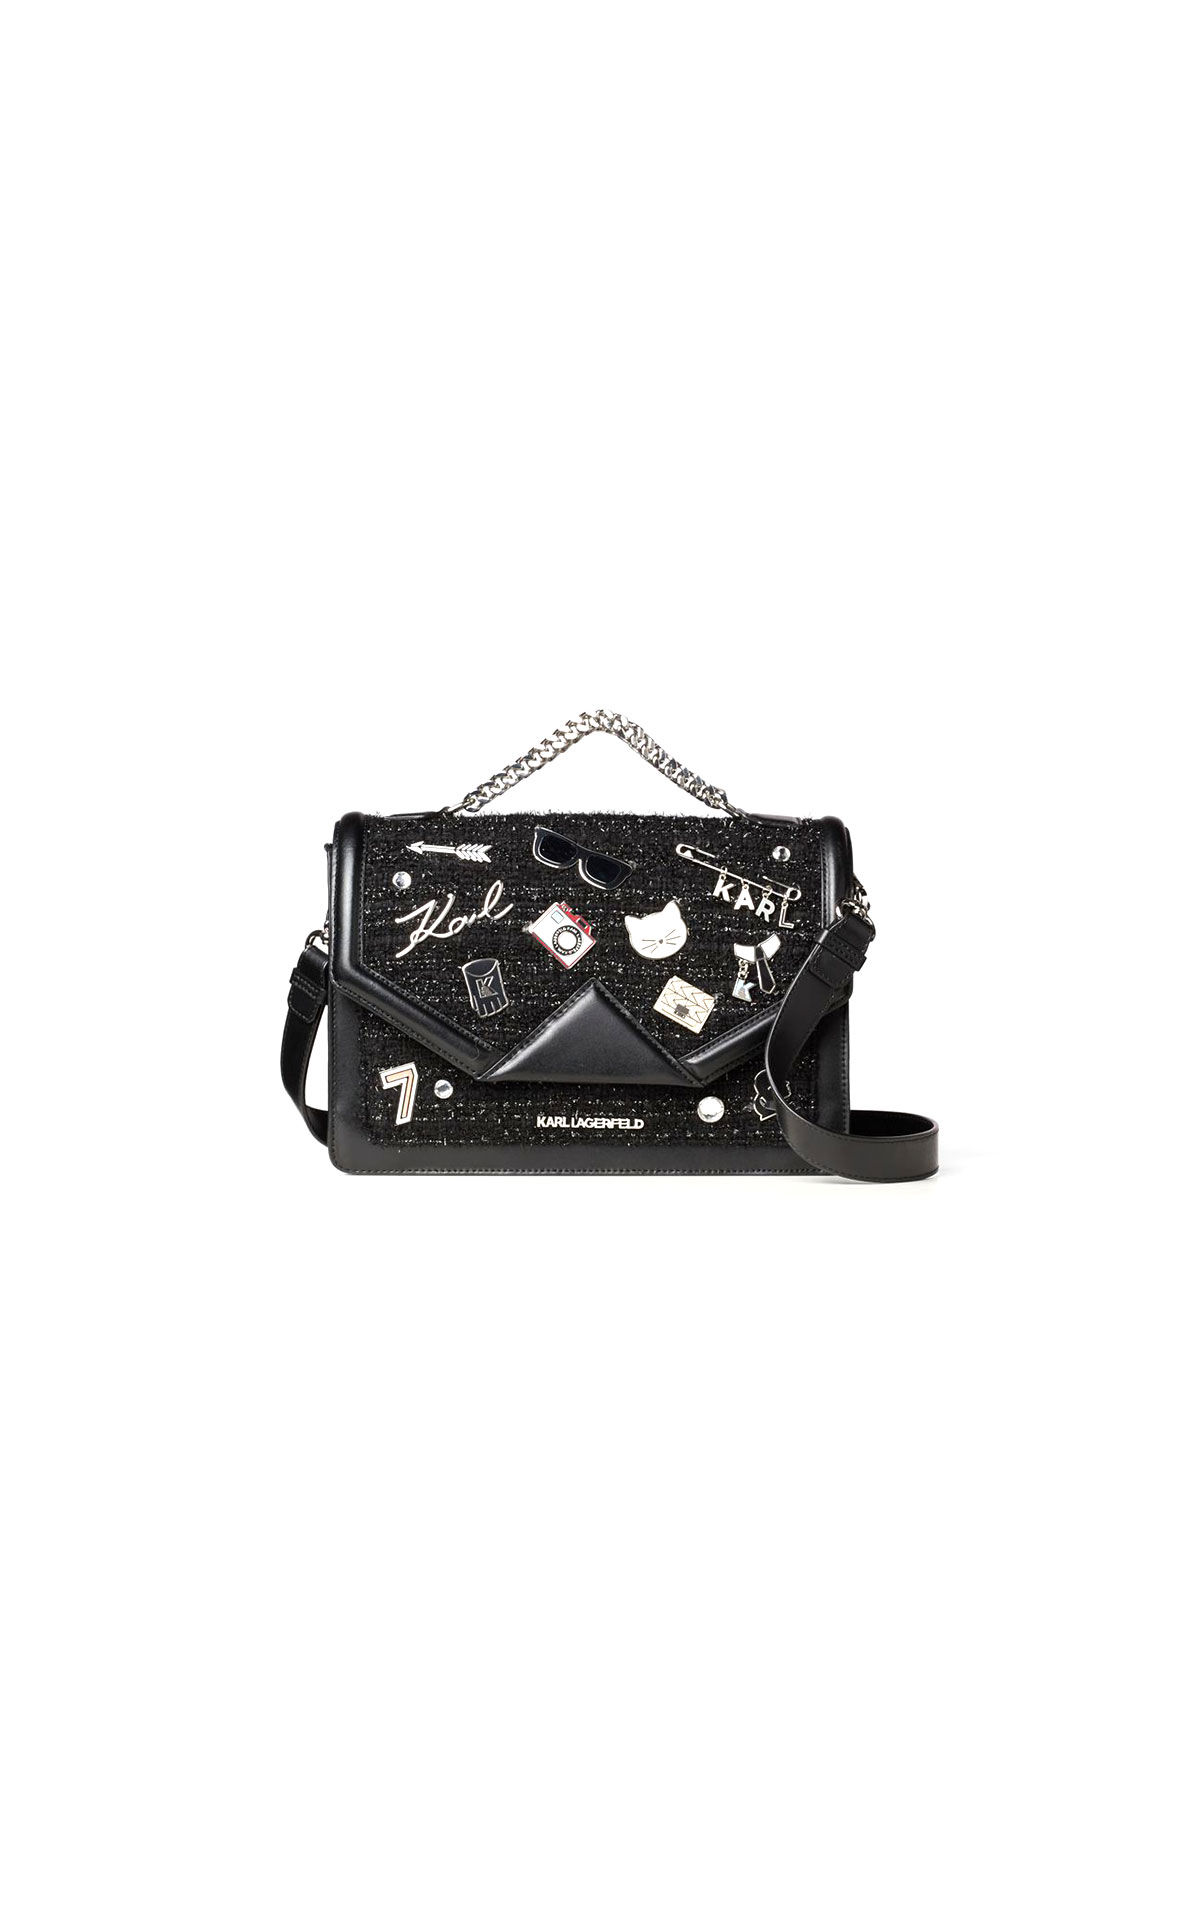 Karl Lagerfeld klassic pins shoulder bag at The Bicester Village Shopping Collection